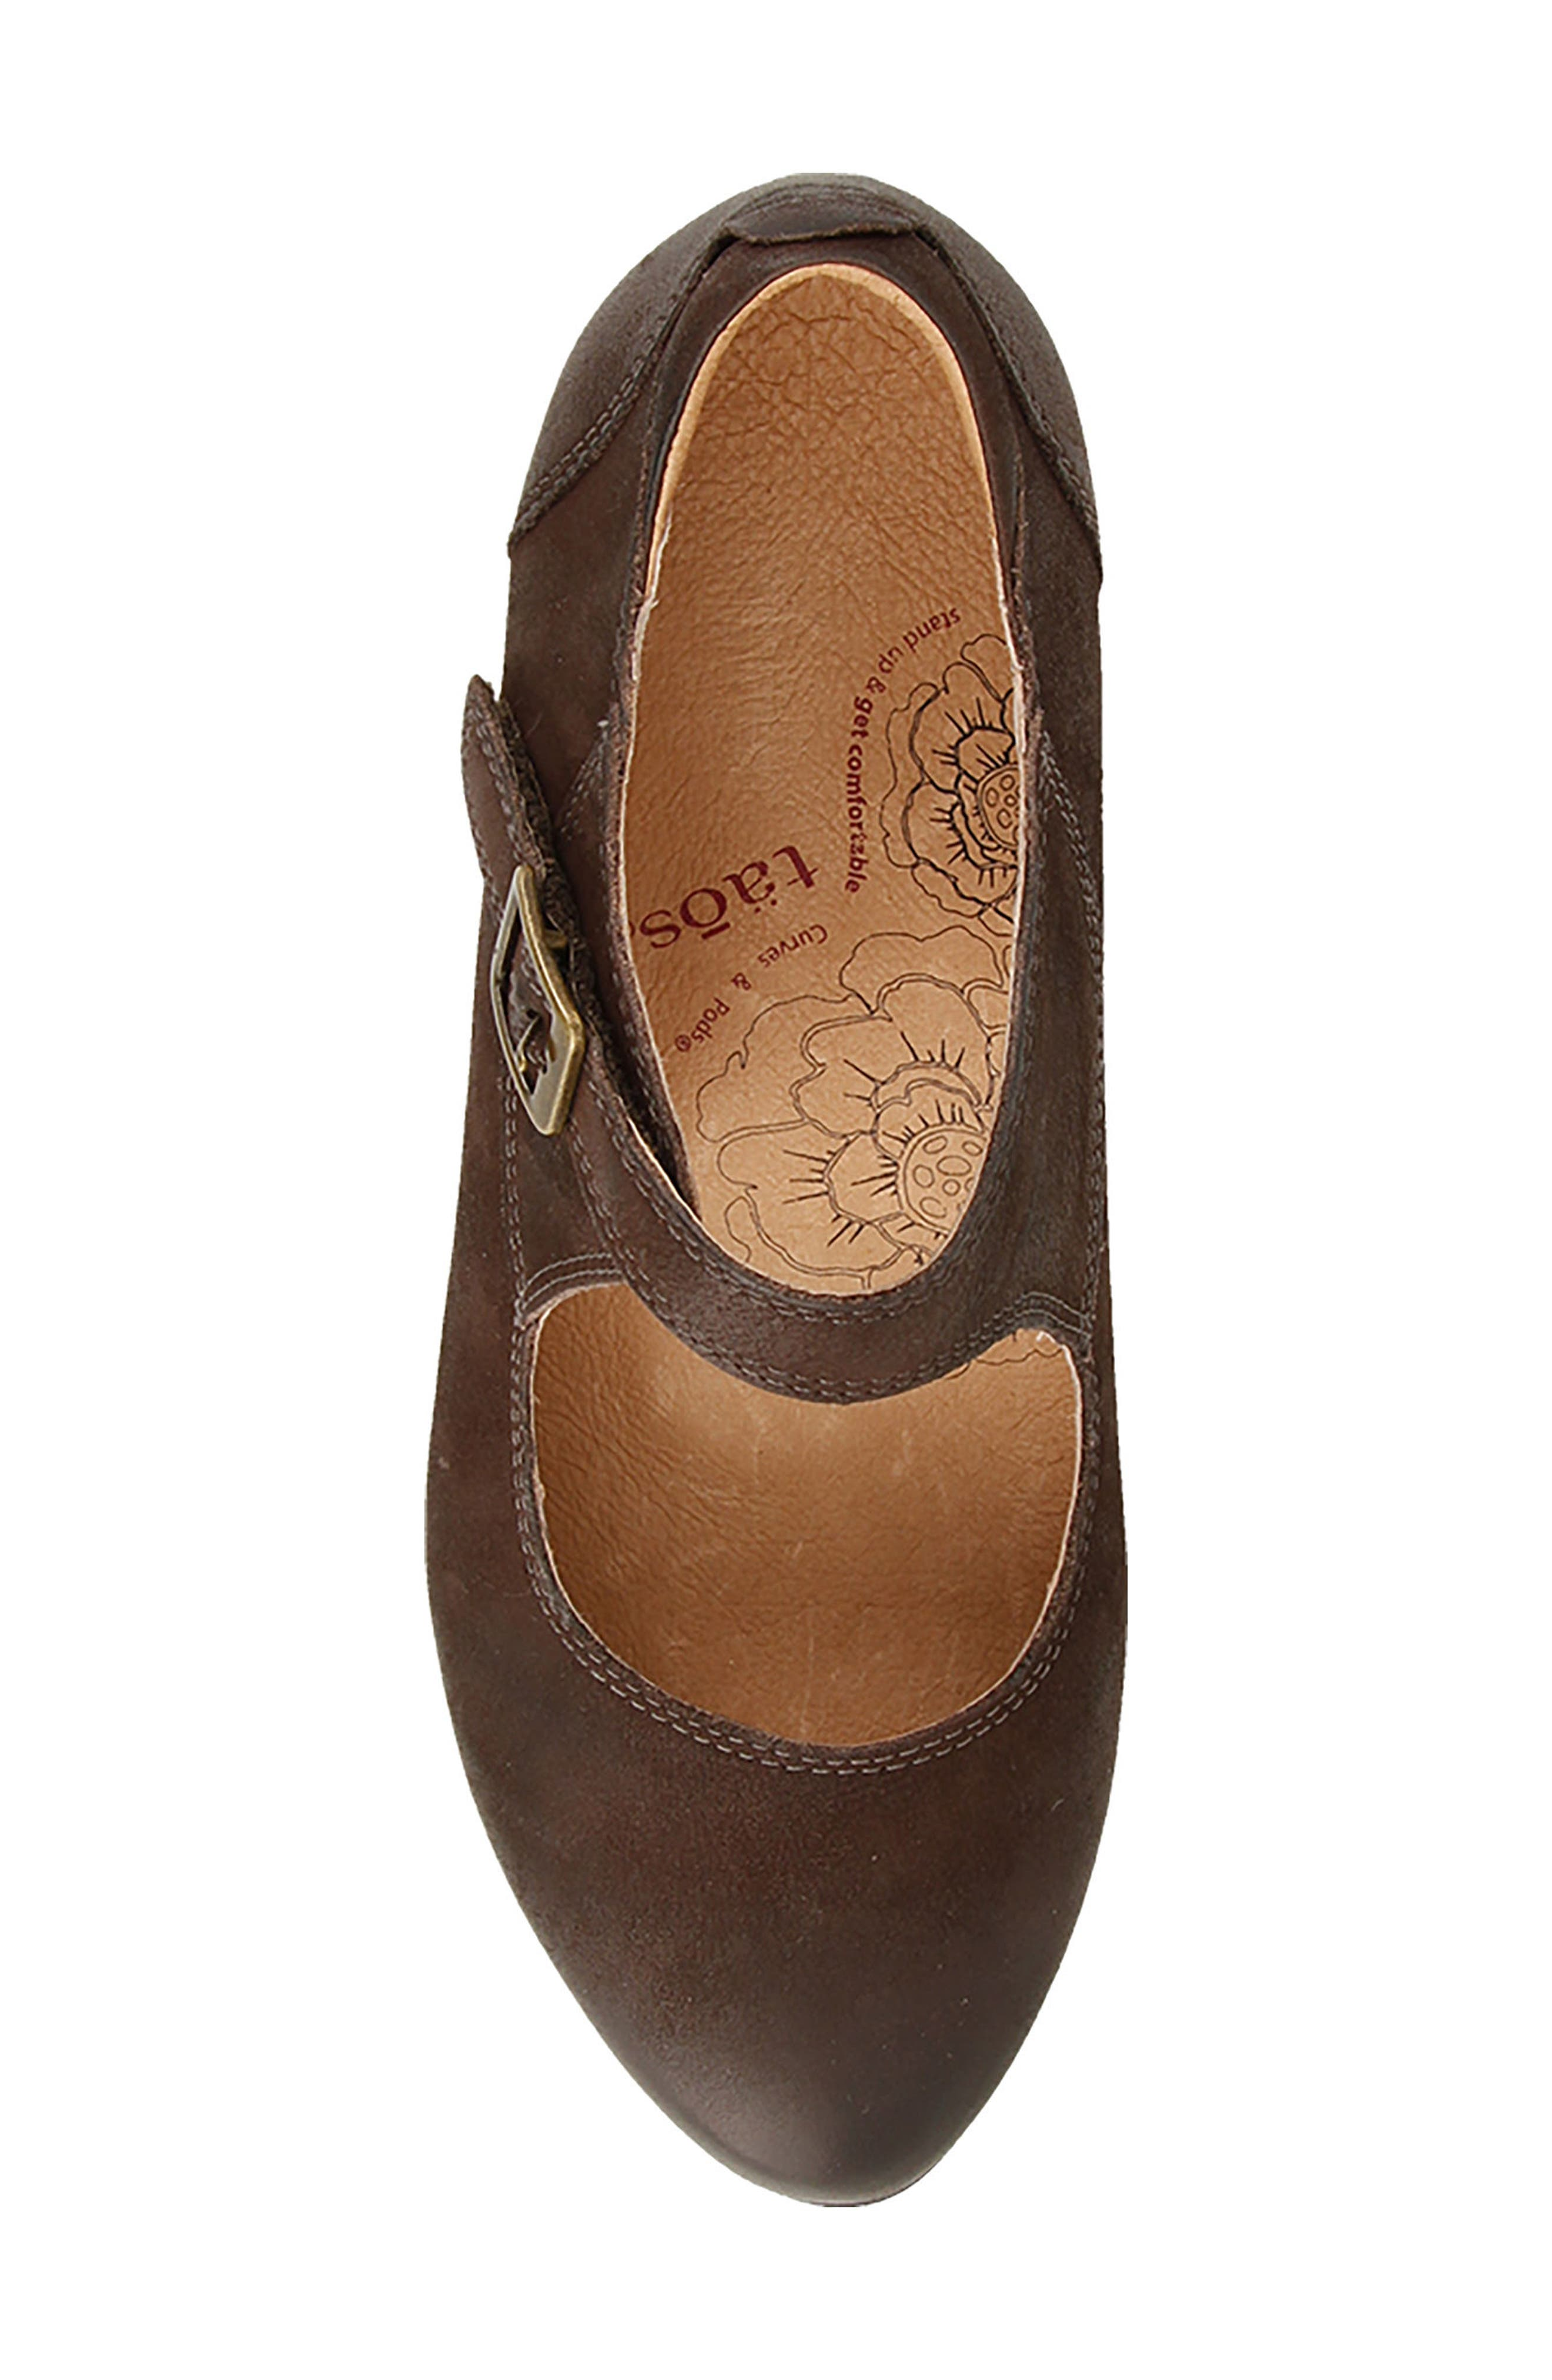 Studio Mary Jane Pump,                             Alternate thumbnail 5, color,                             Chocolate Oiled Leather